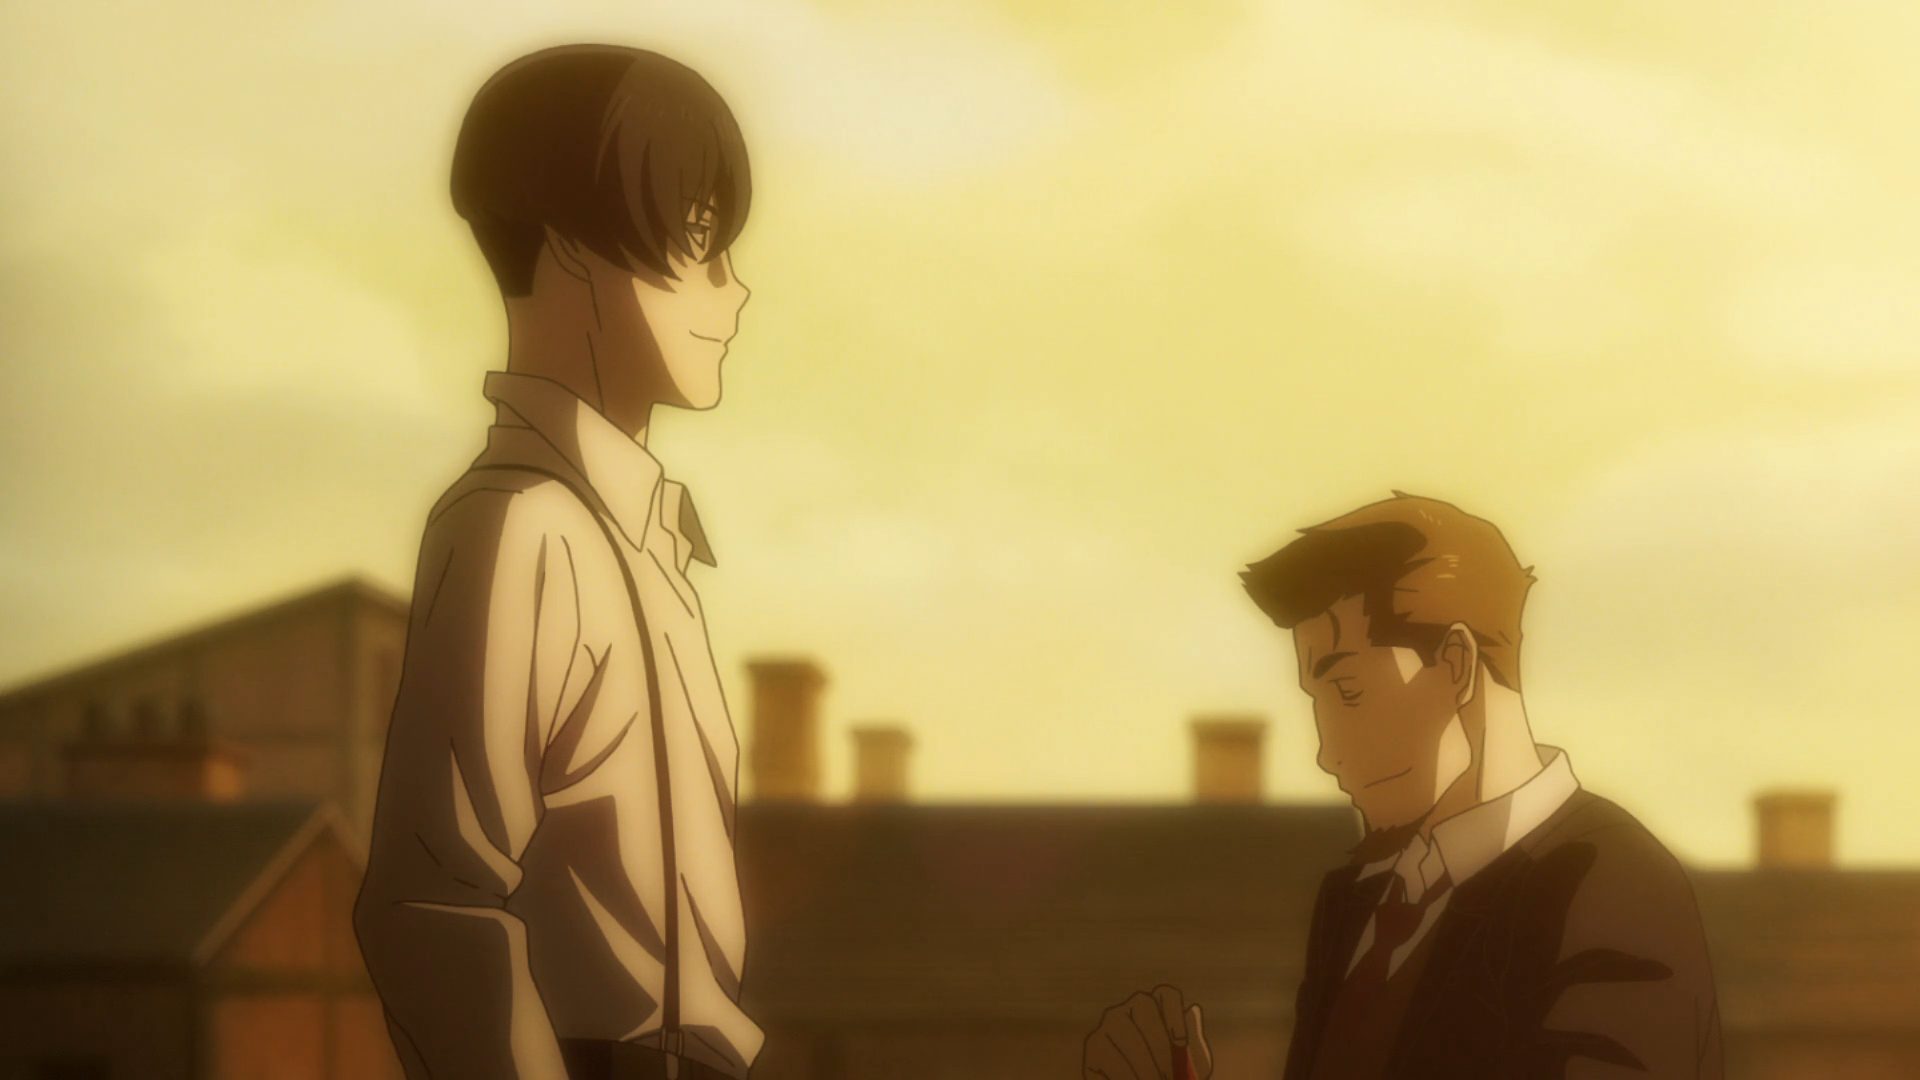 91 Days Episode 6 Angelo And Nero Talking On A Rooftop